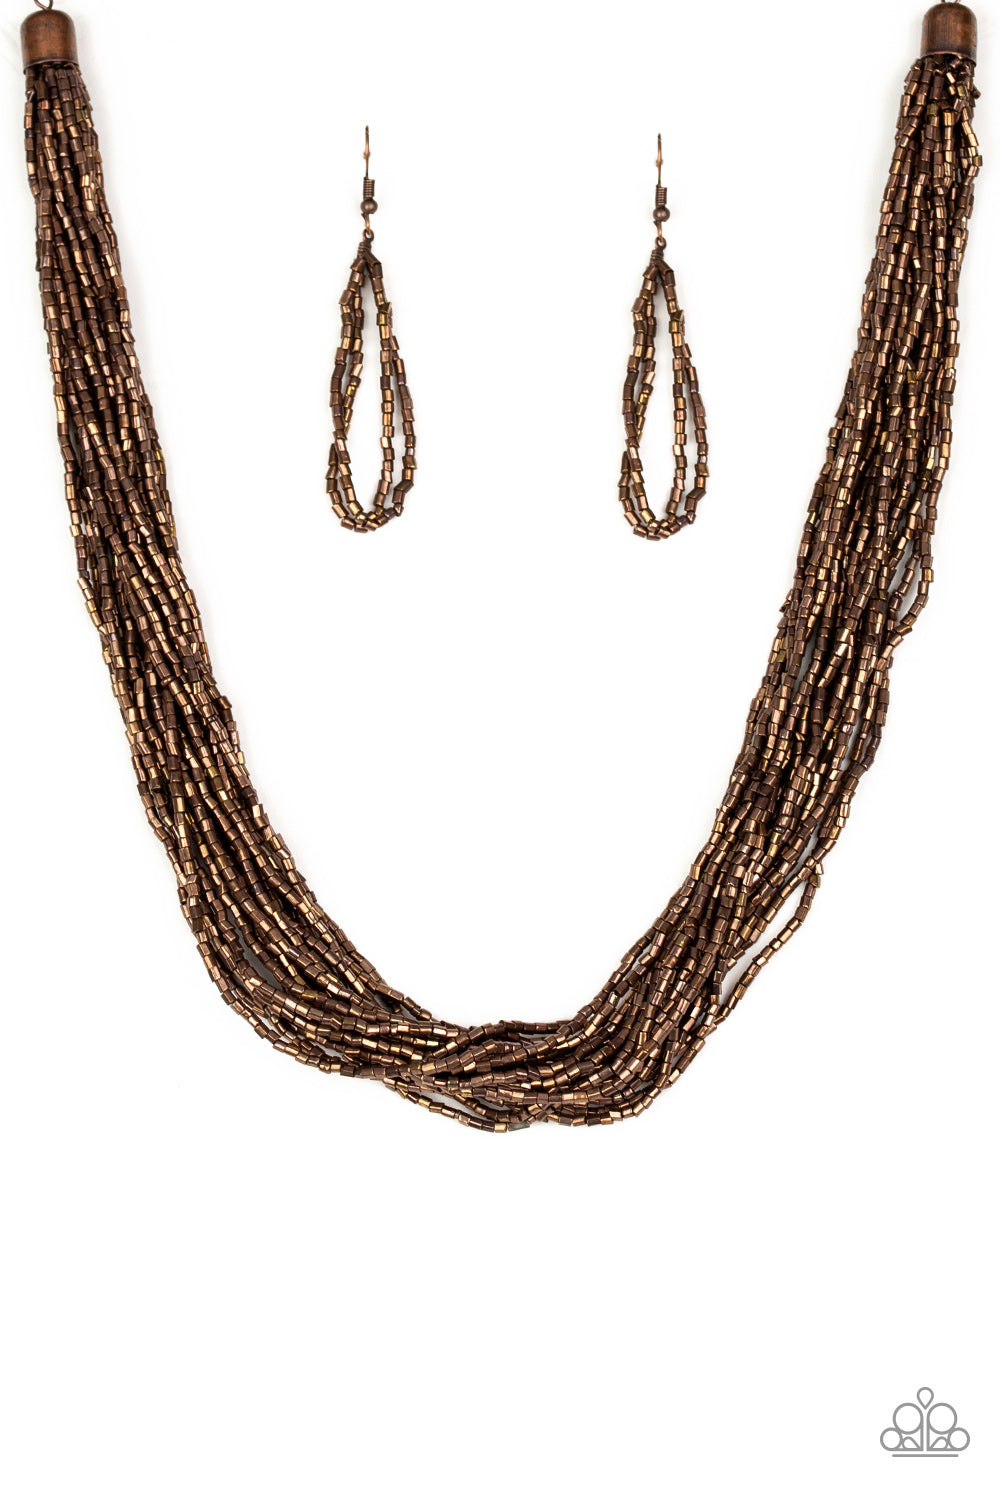 The Speed of STARLIGHT - Copper Seed Bead Necklace